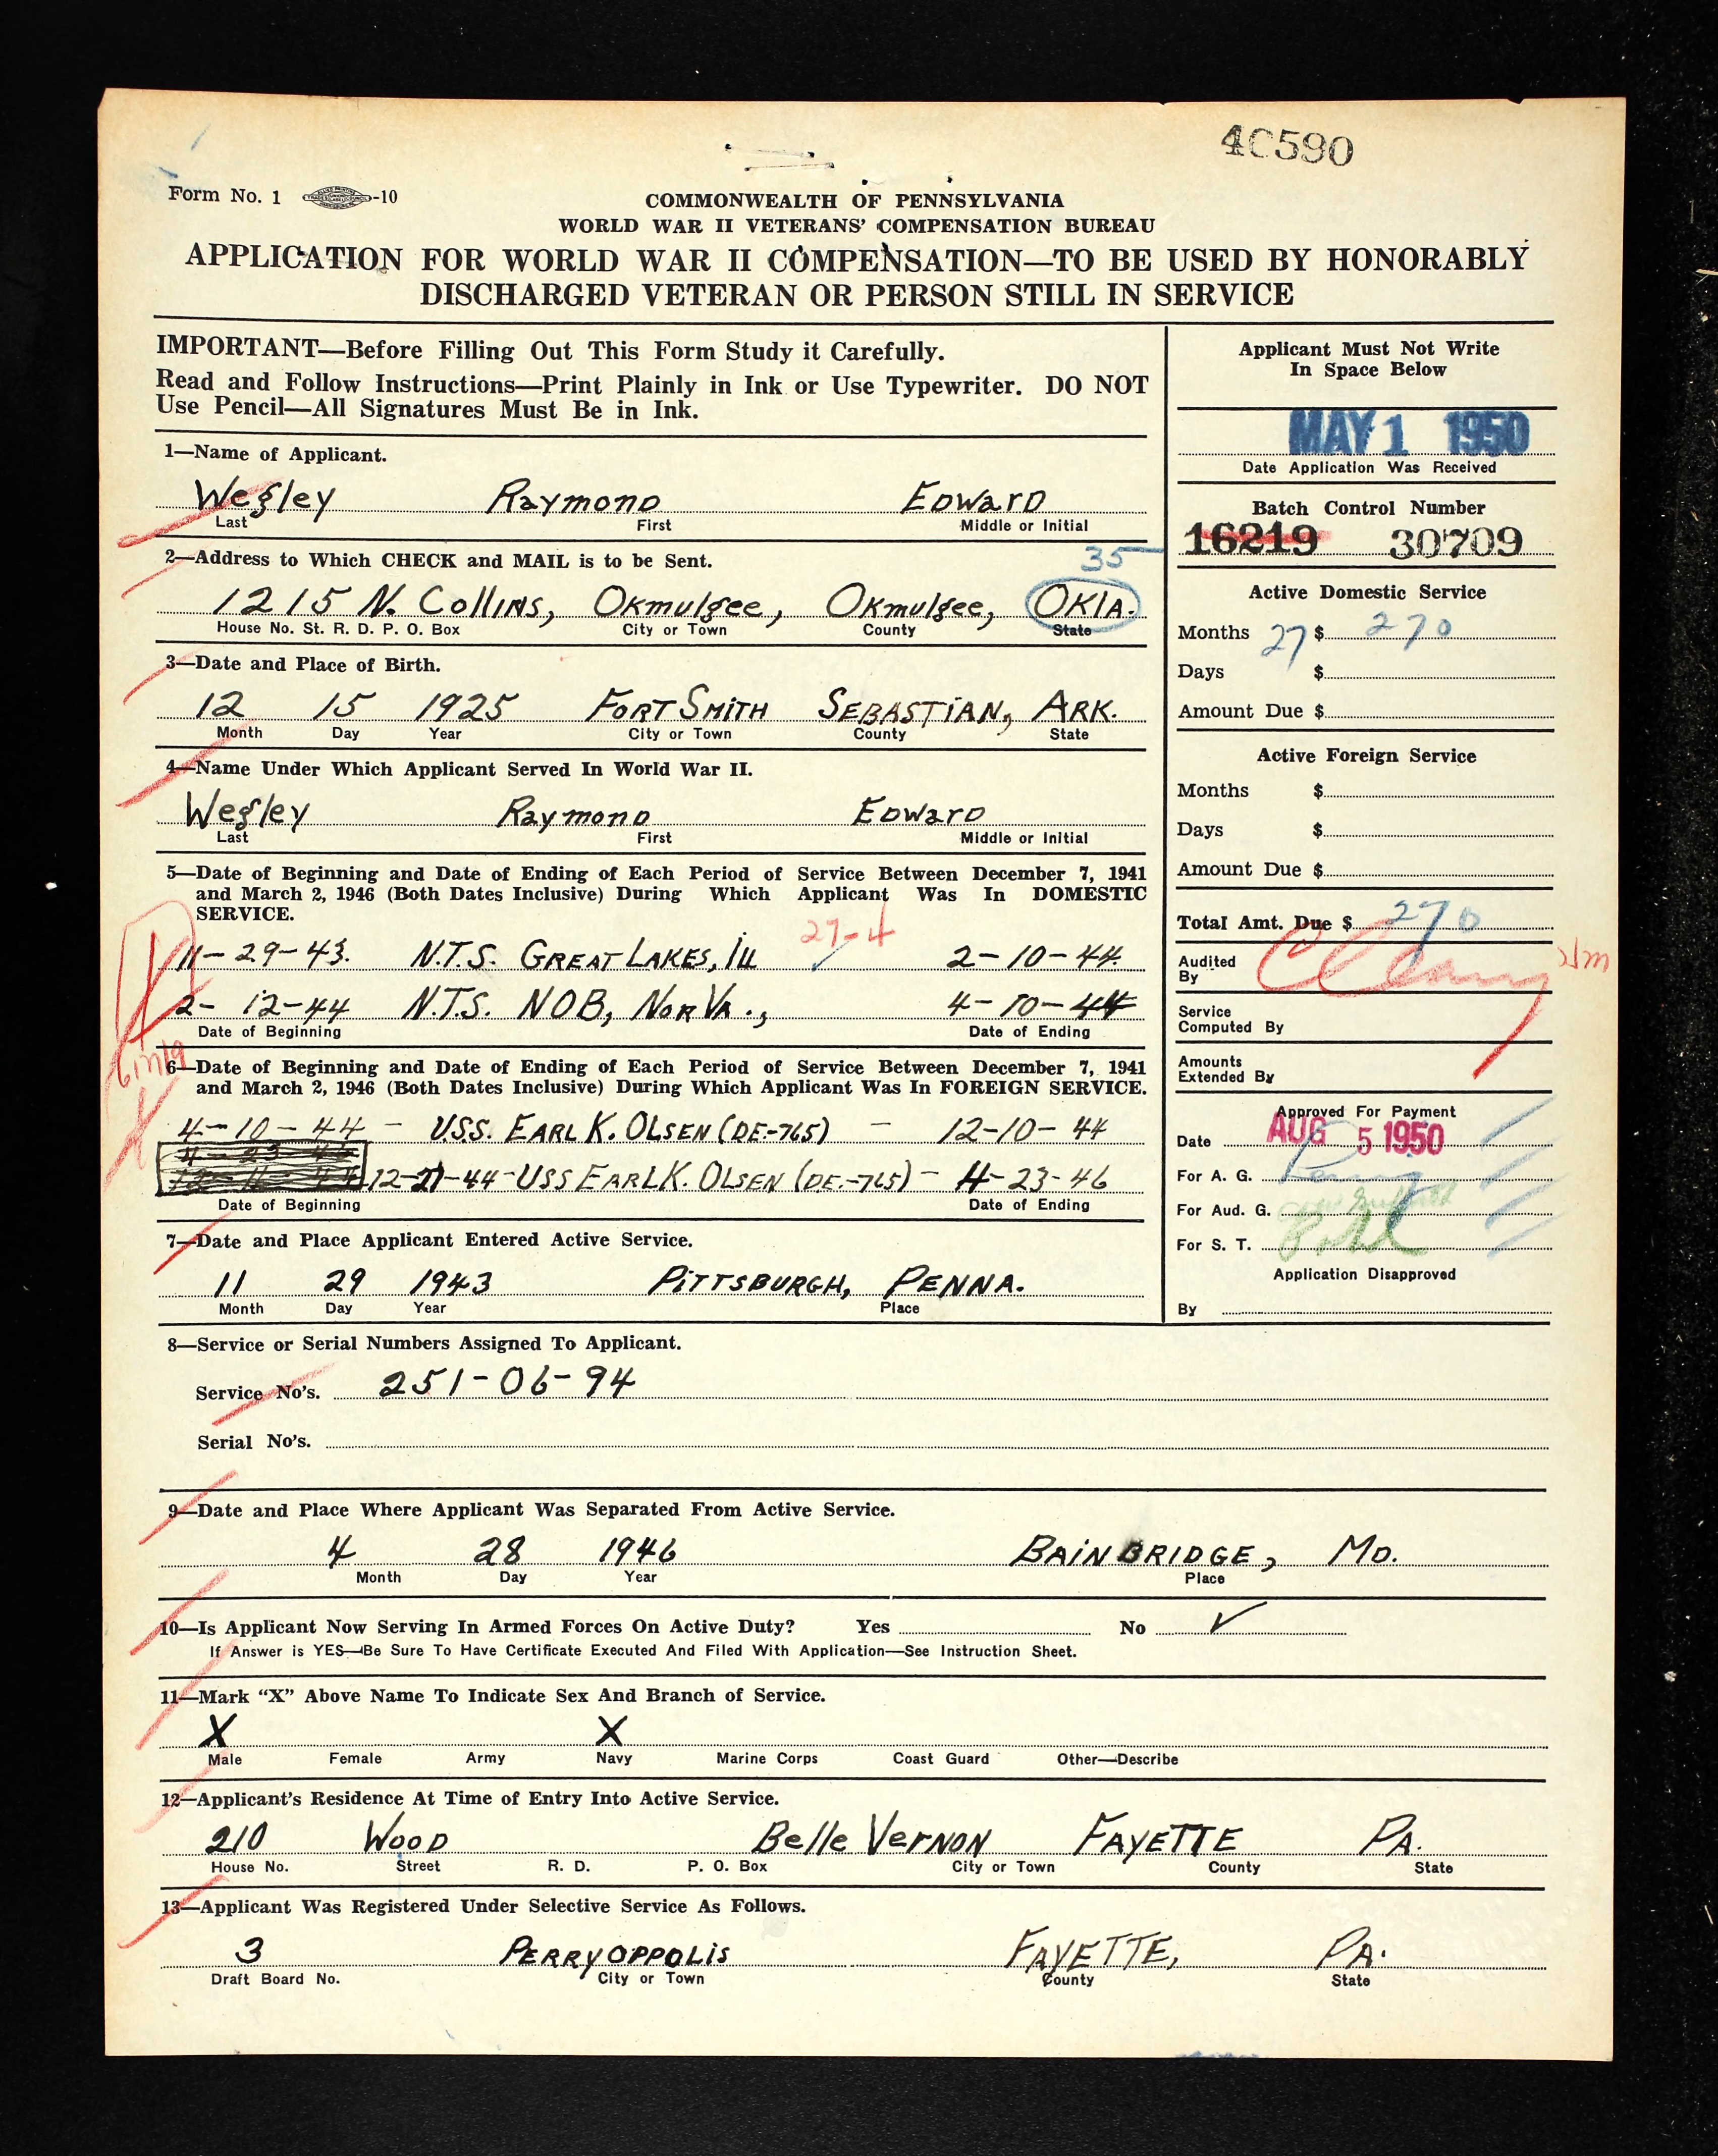 Arkansas tracy and family penn veteran compensation application wwii raymond wegley 1betcityfo Image collections